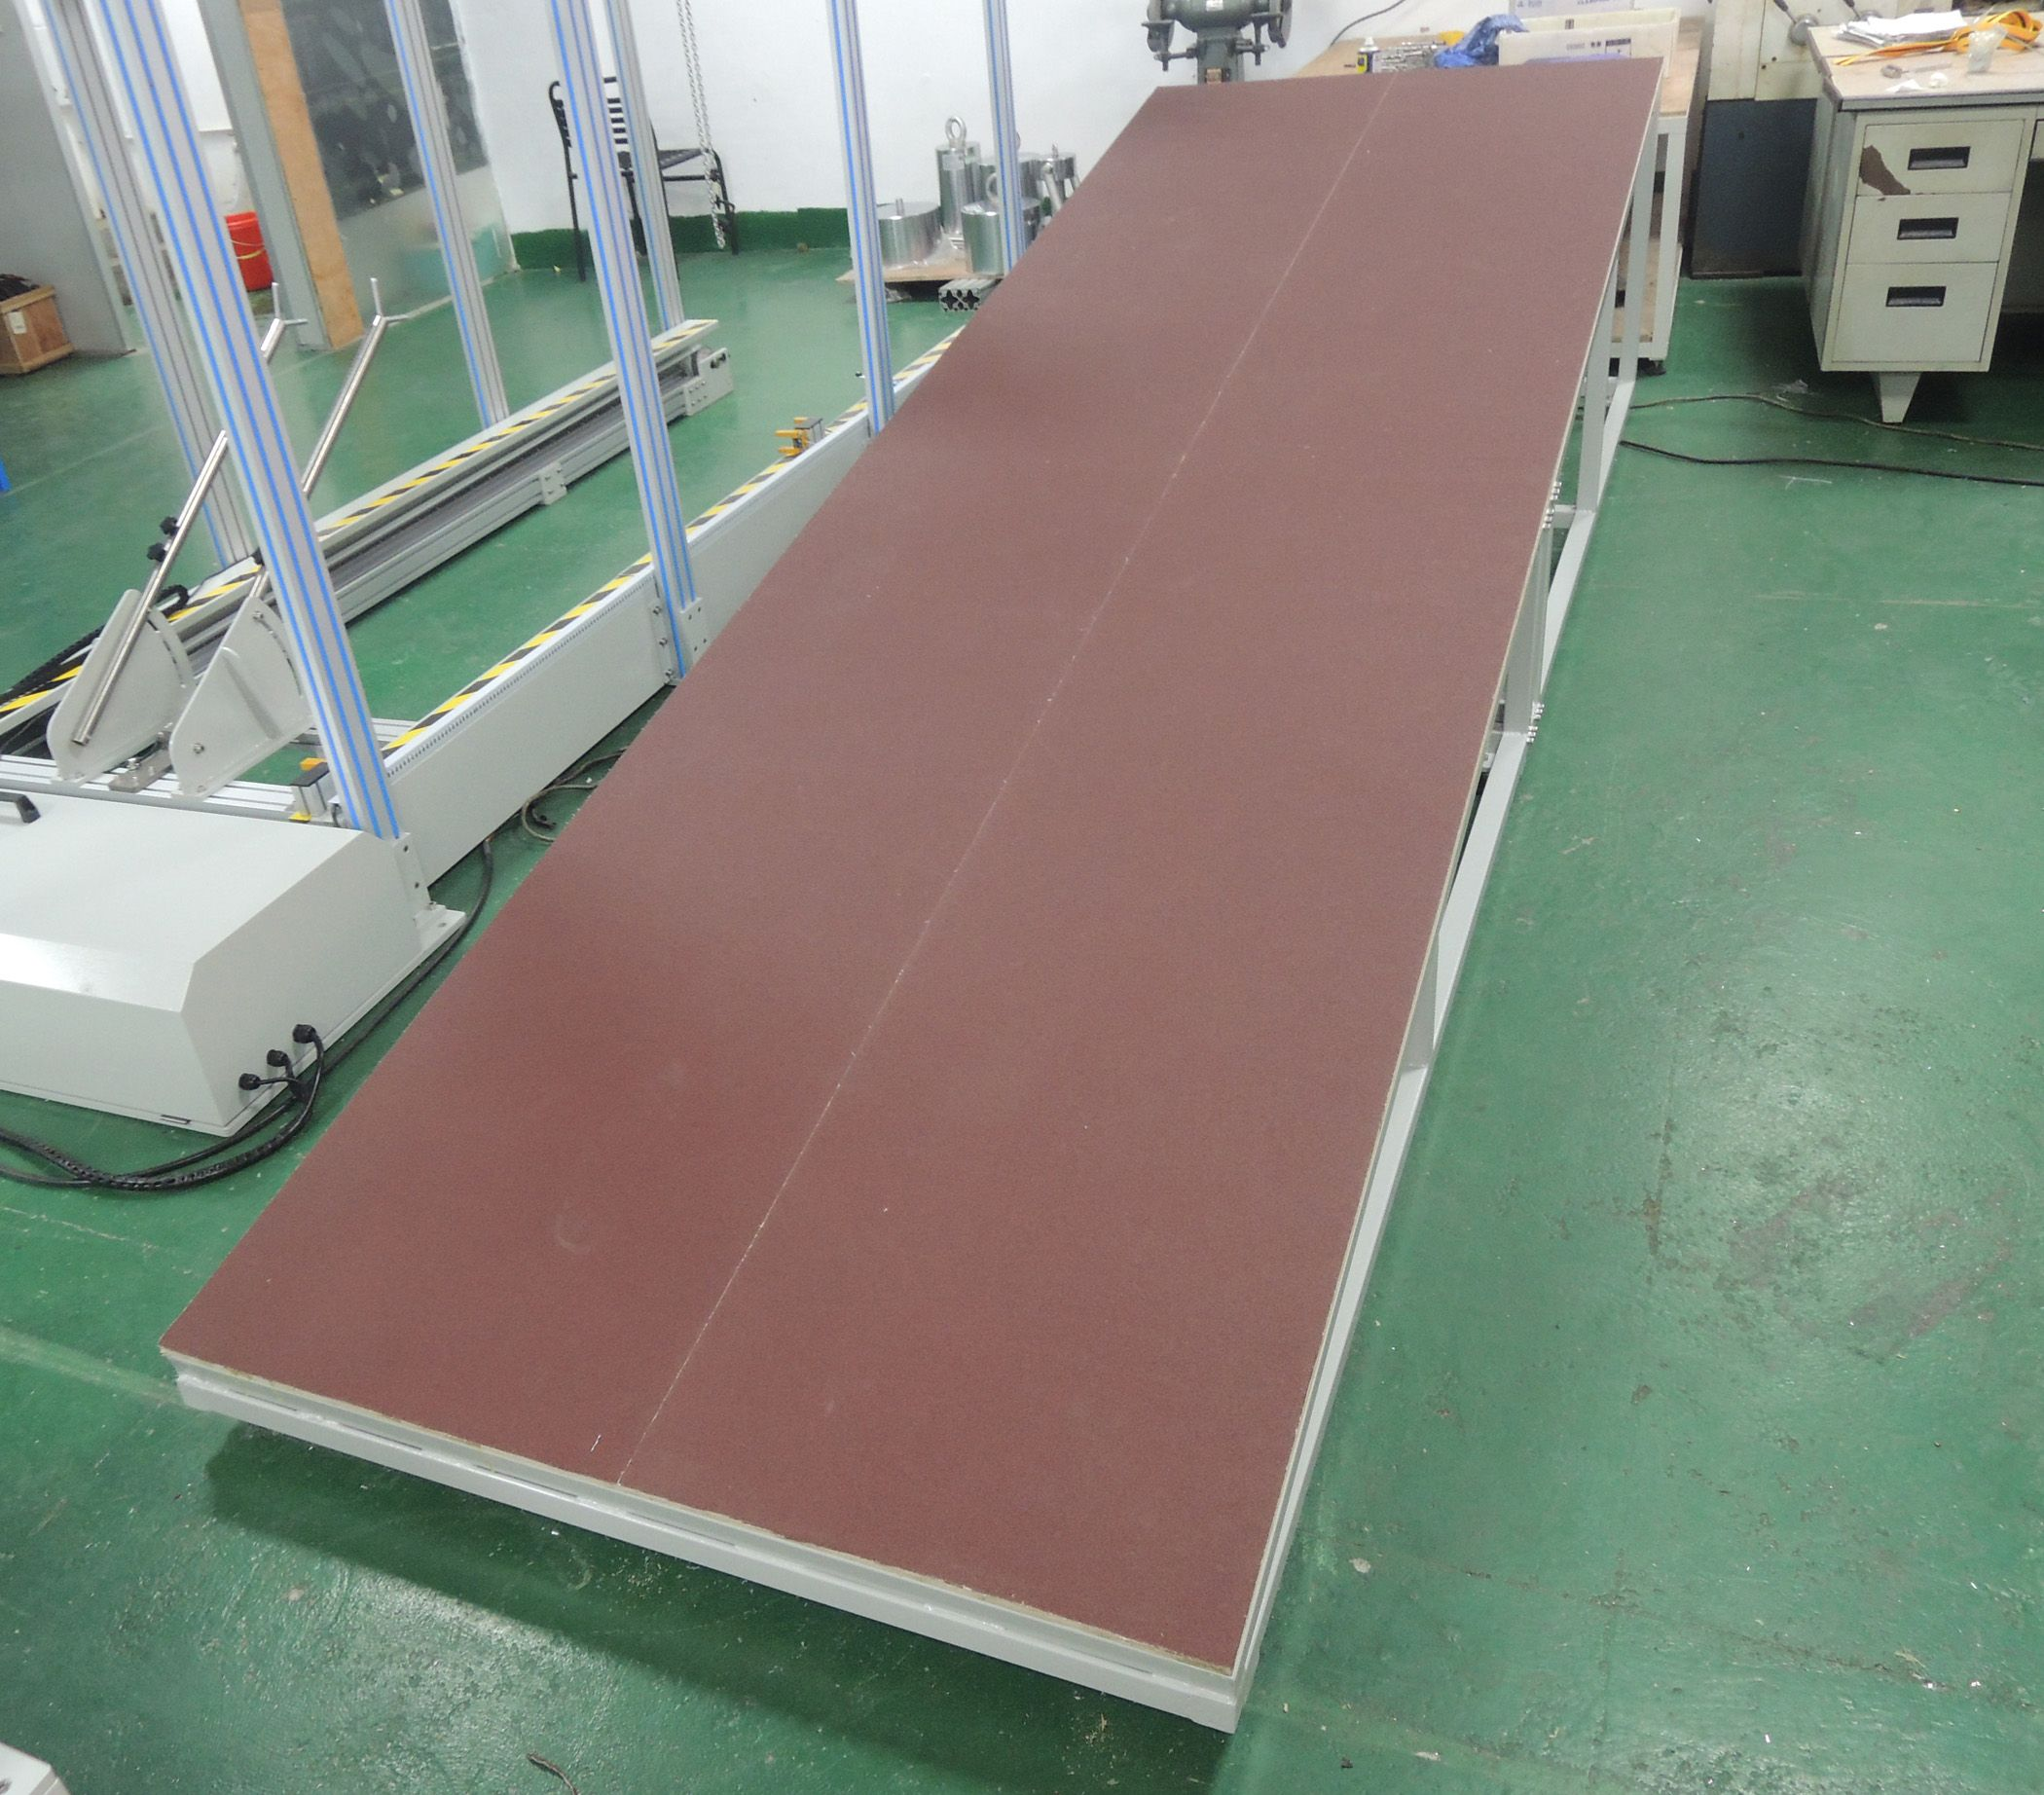 EN71-1 Motor Brake Performance Testing Ramp